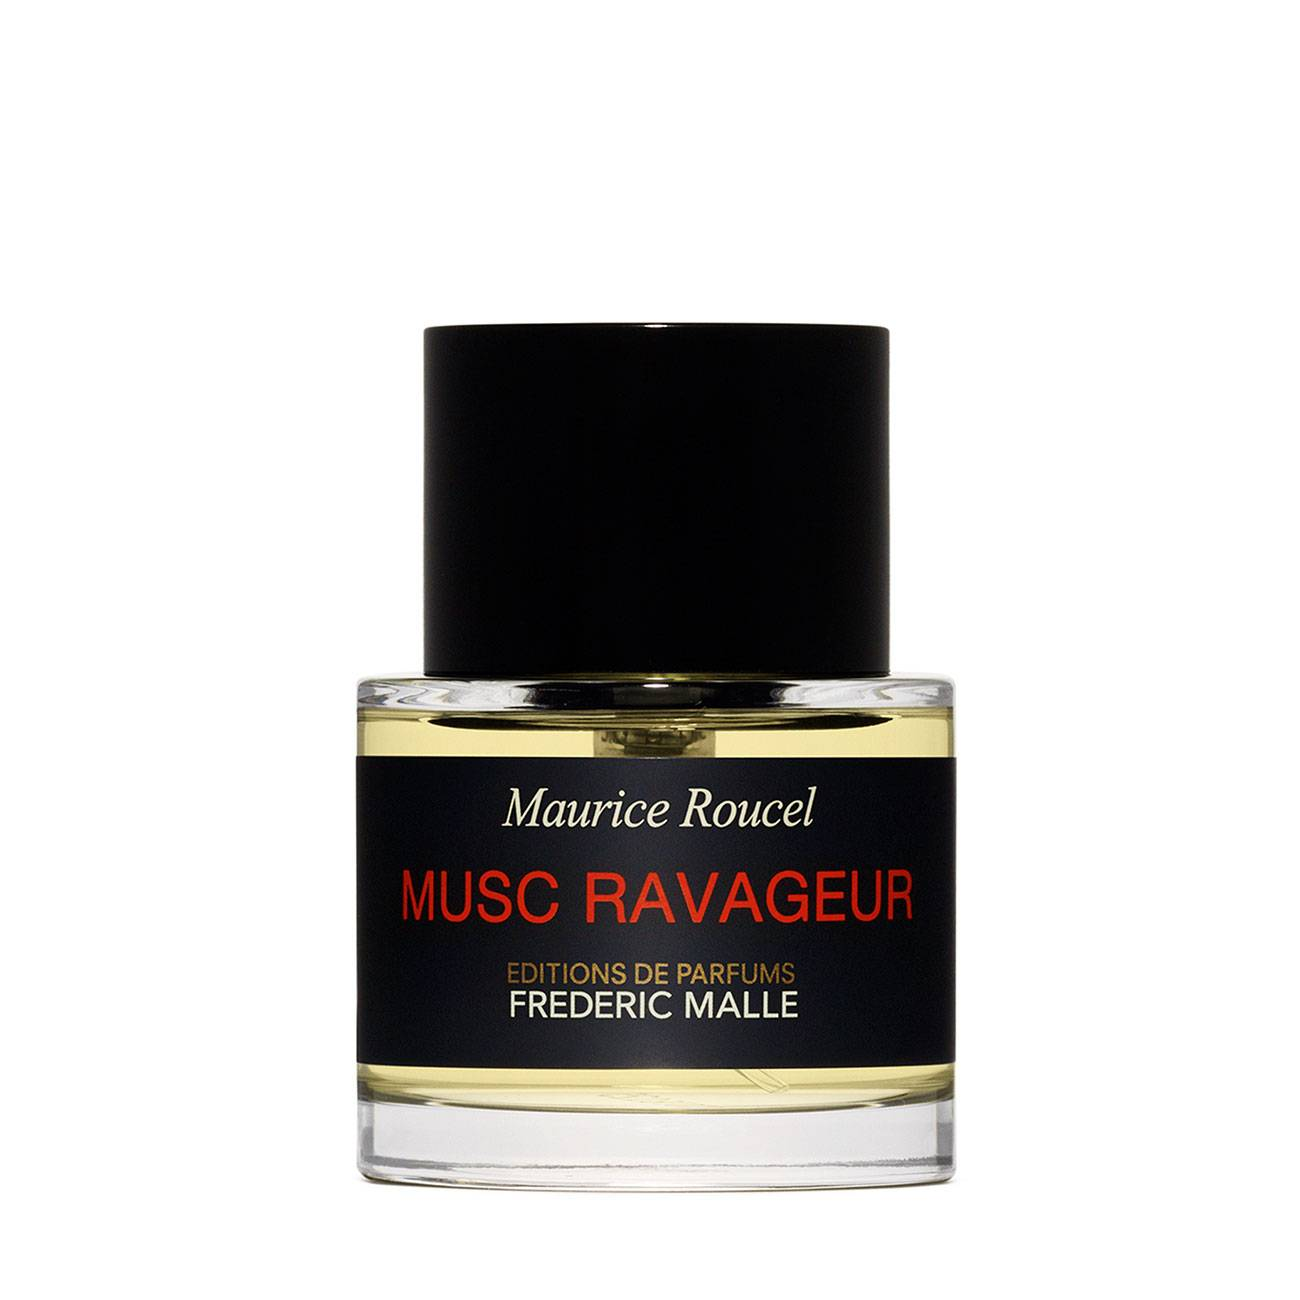 Music Ravageur by Maurice Roucel (50 ml)